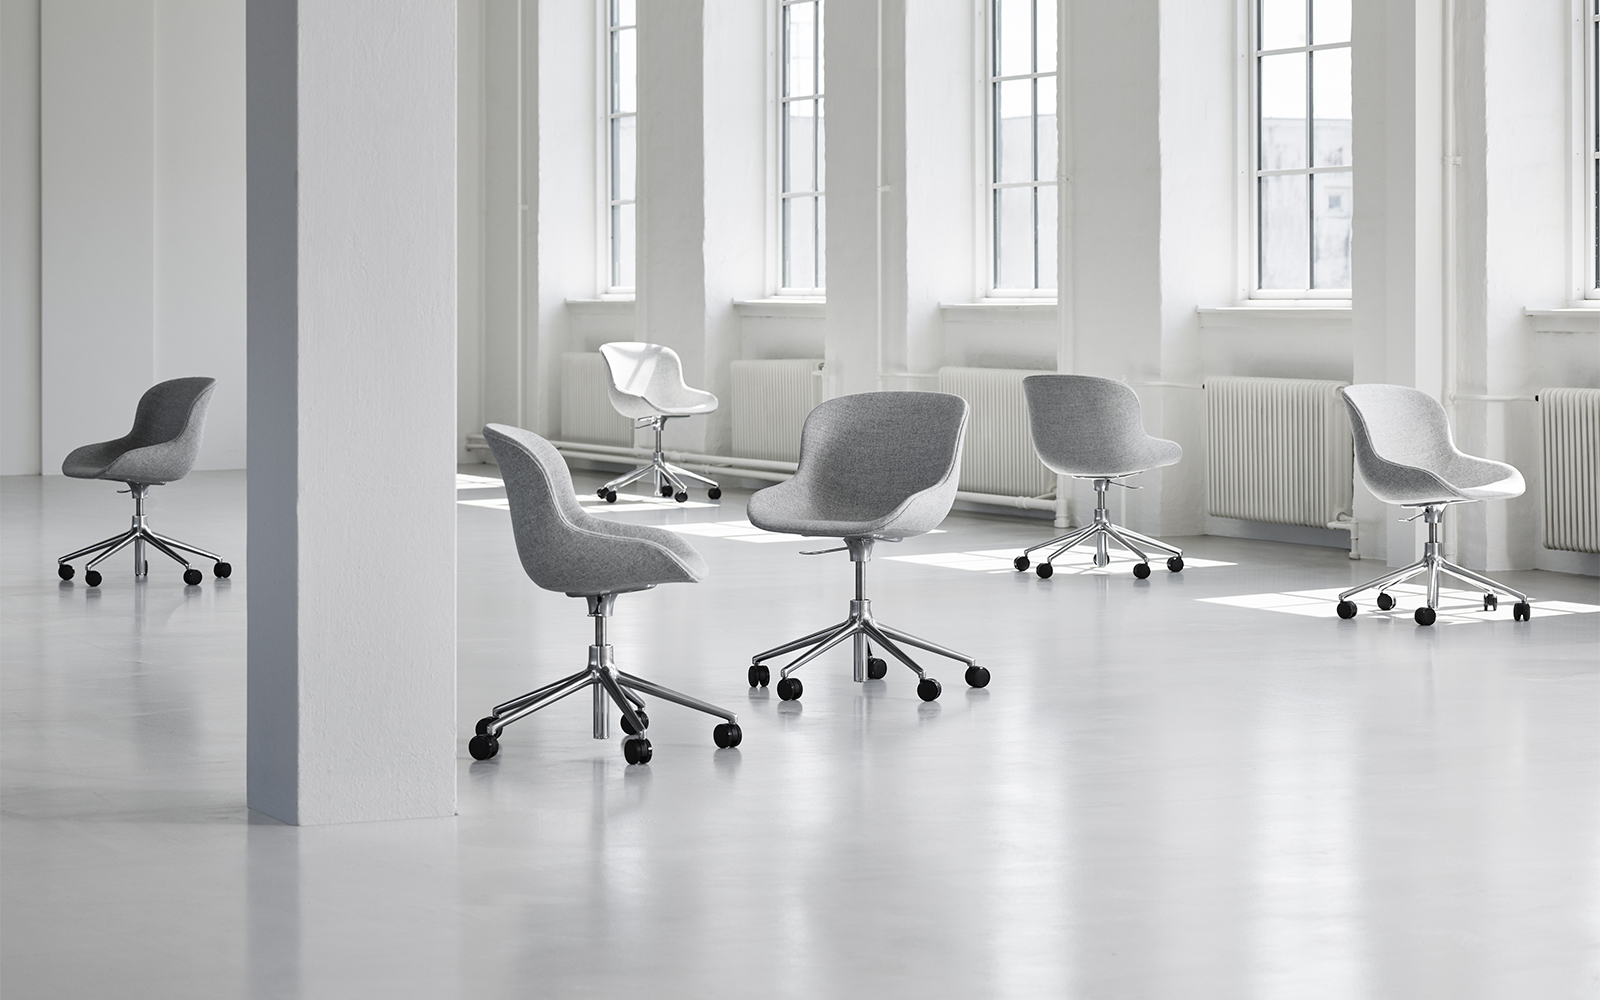 Hyg Swivel Chair - Normann Copenhagen